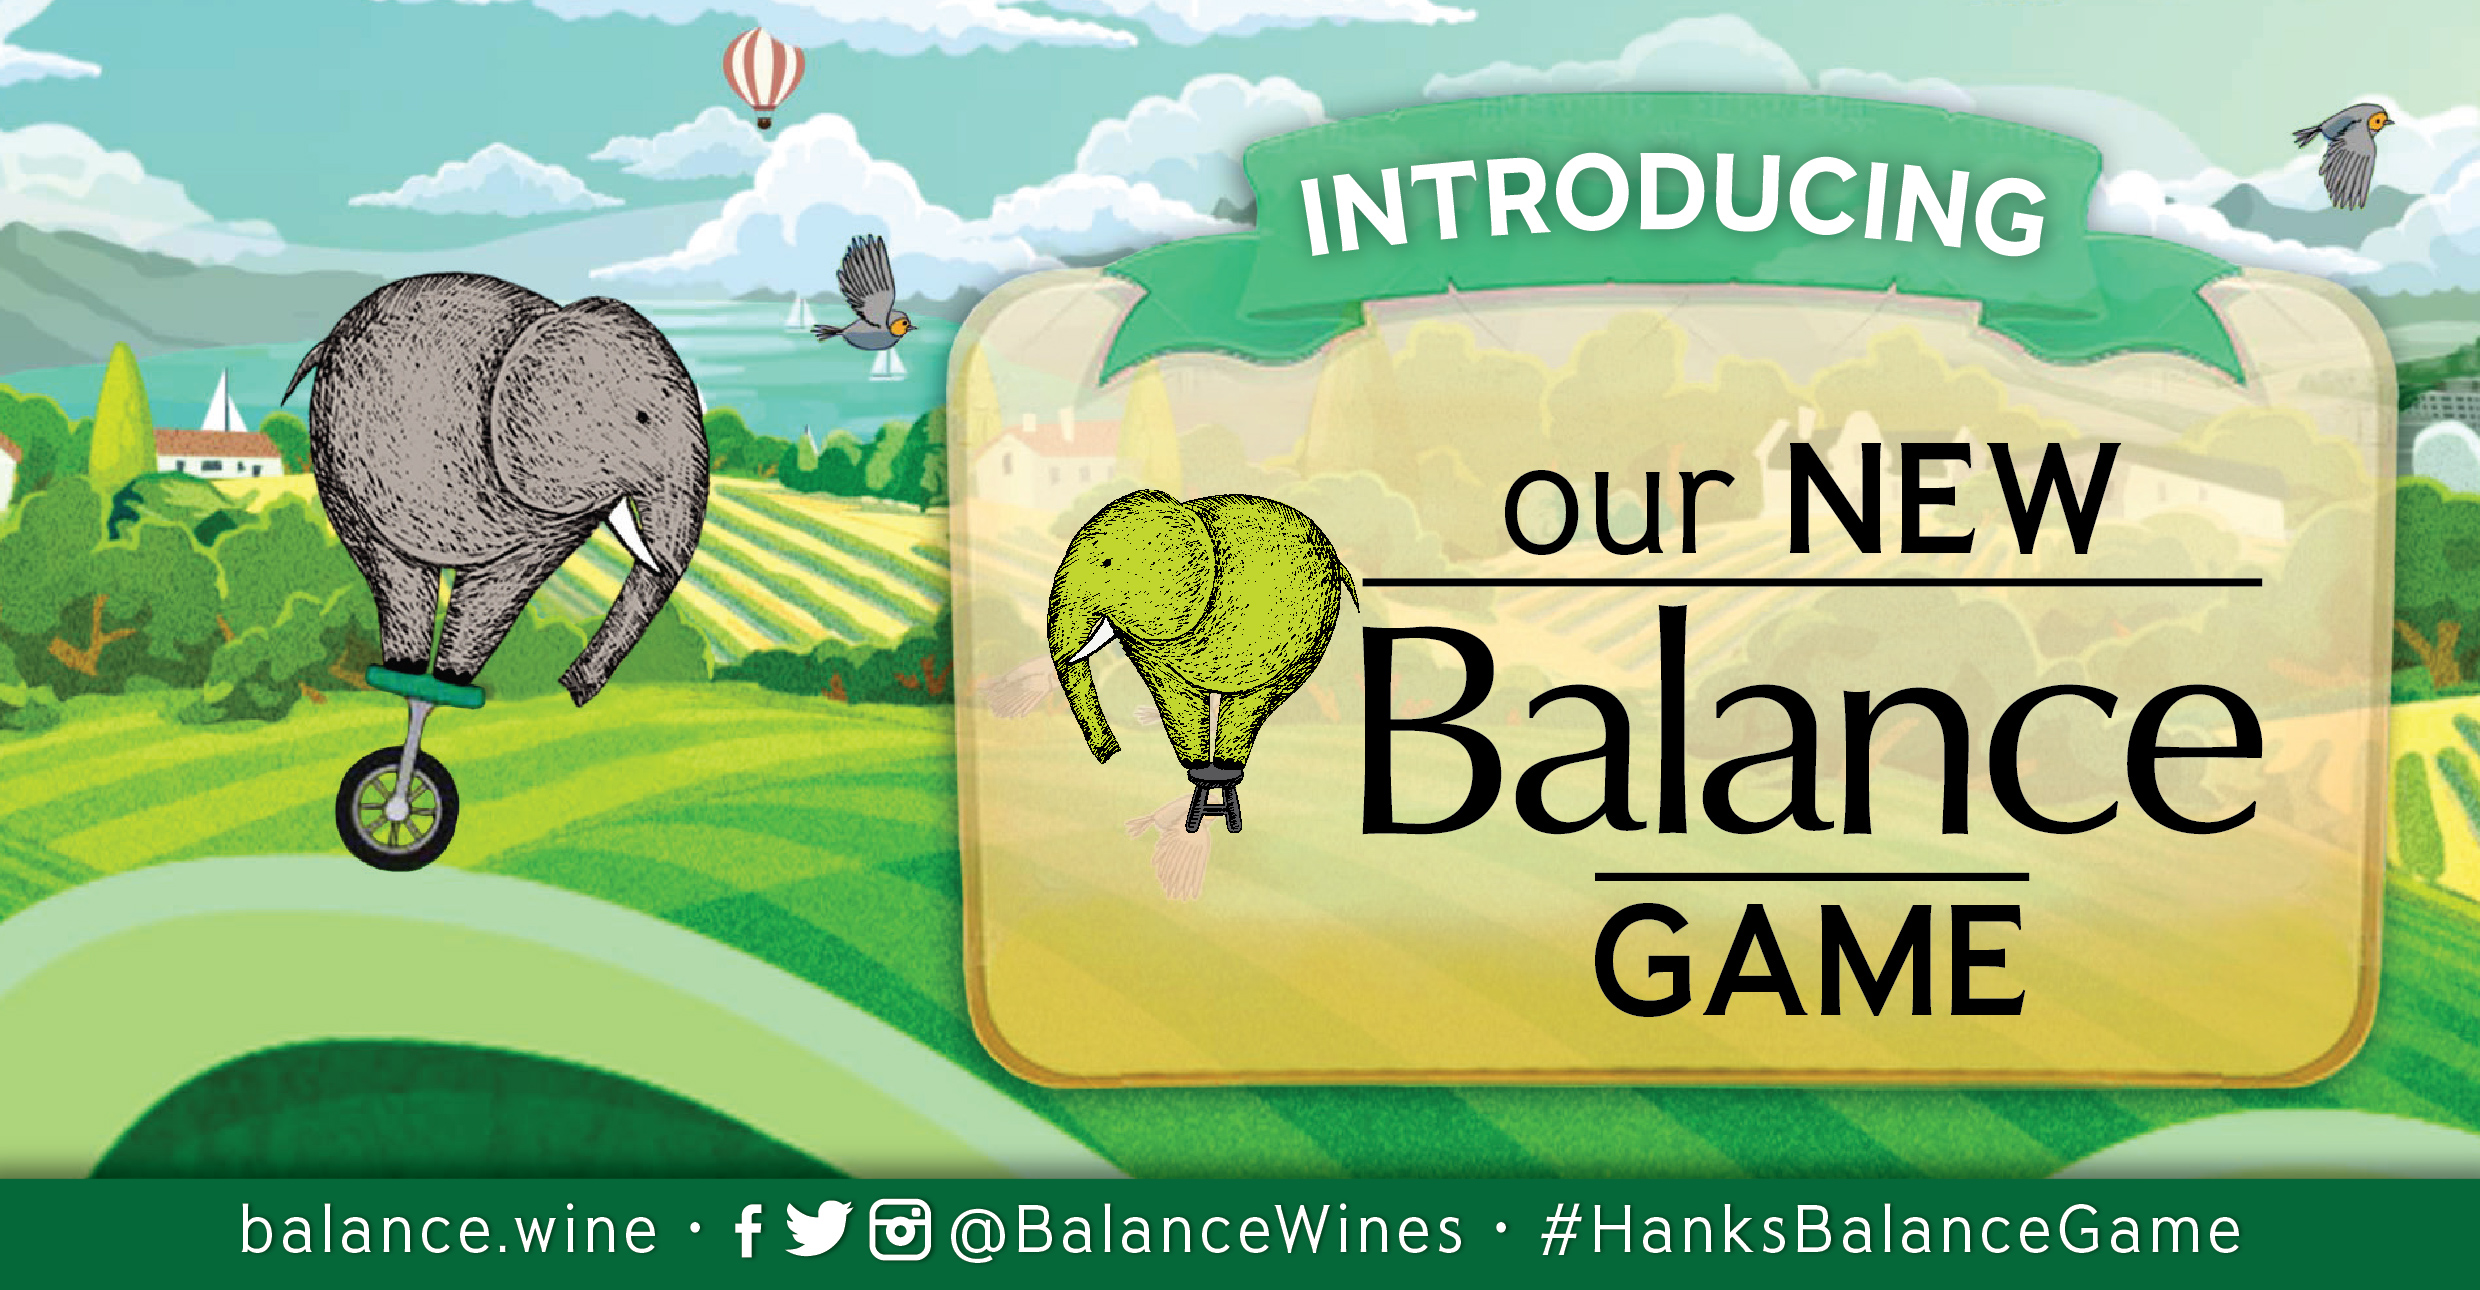 Balance launches exciting new online game in support of elephant conservation photo